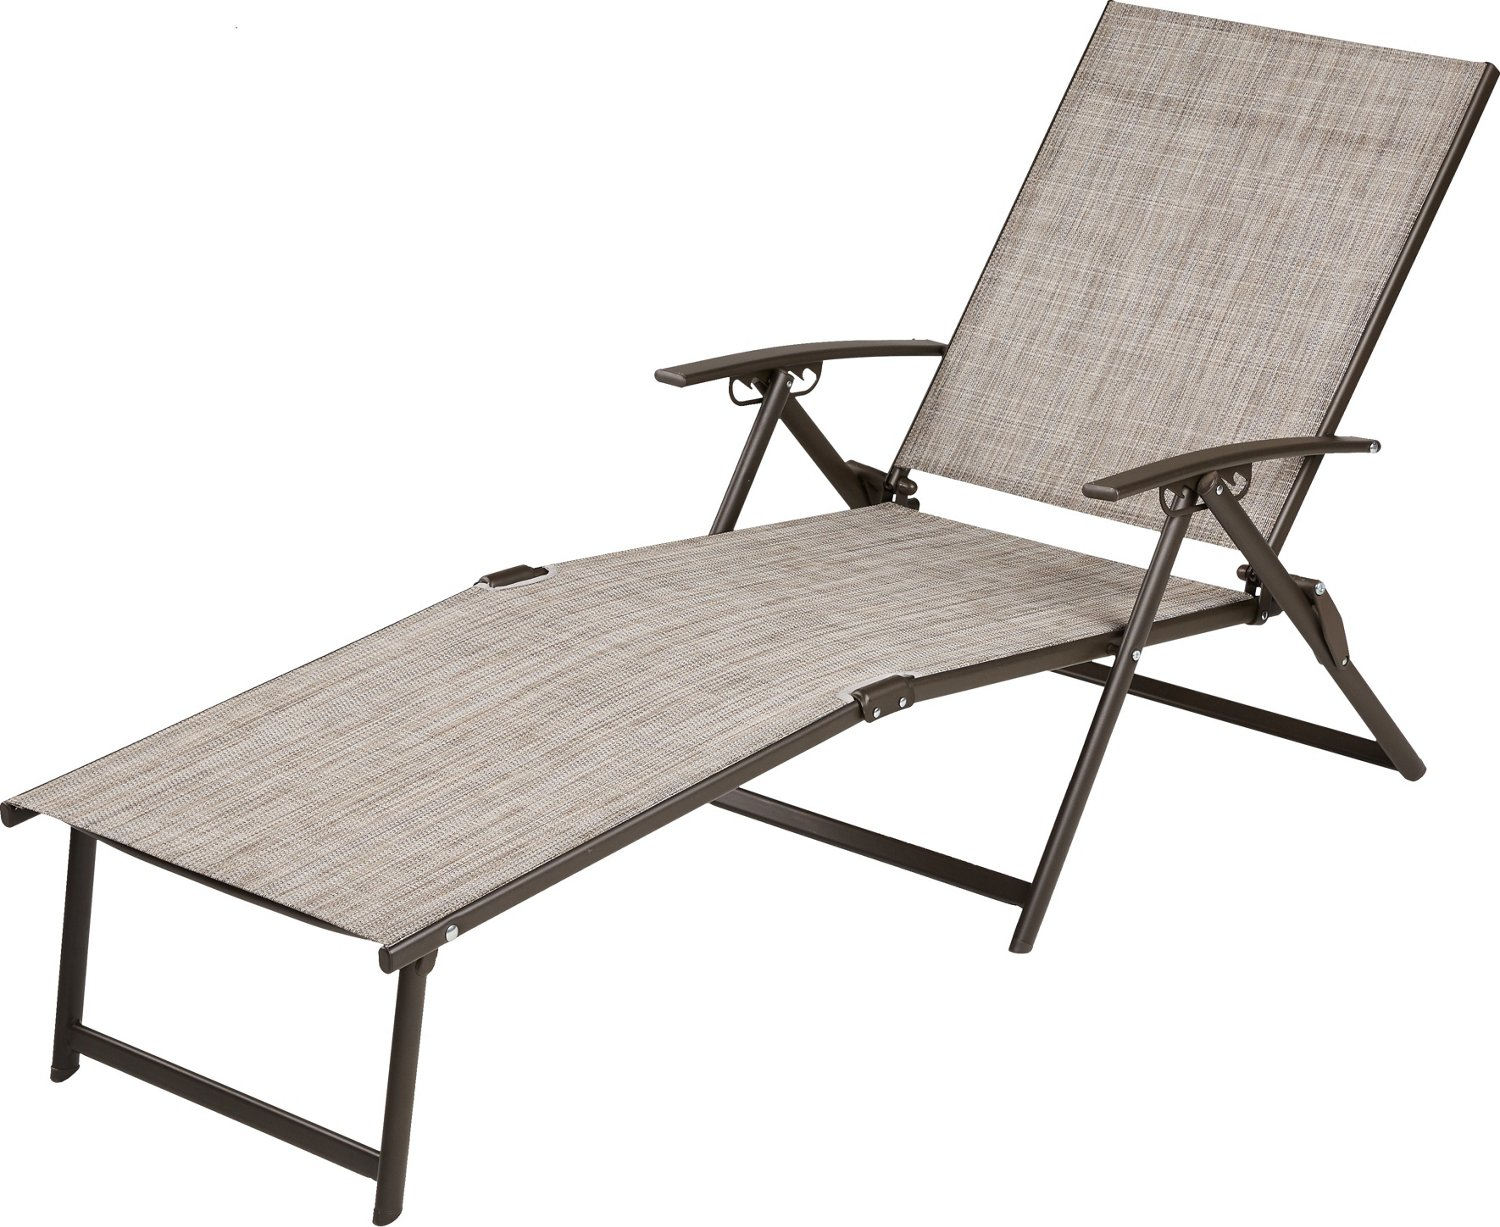 academy sports patio chairs cool office chair furniture folding sling chaise lounge